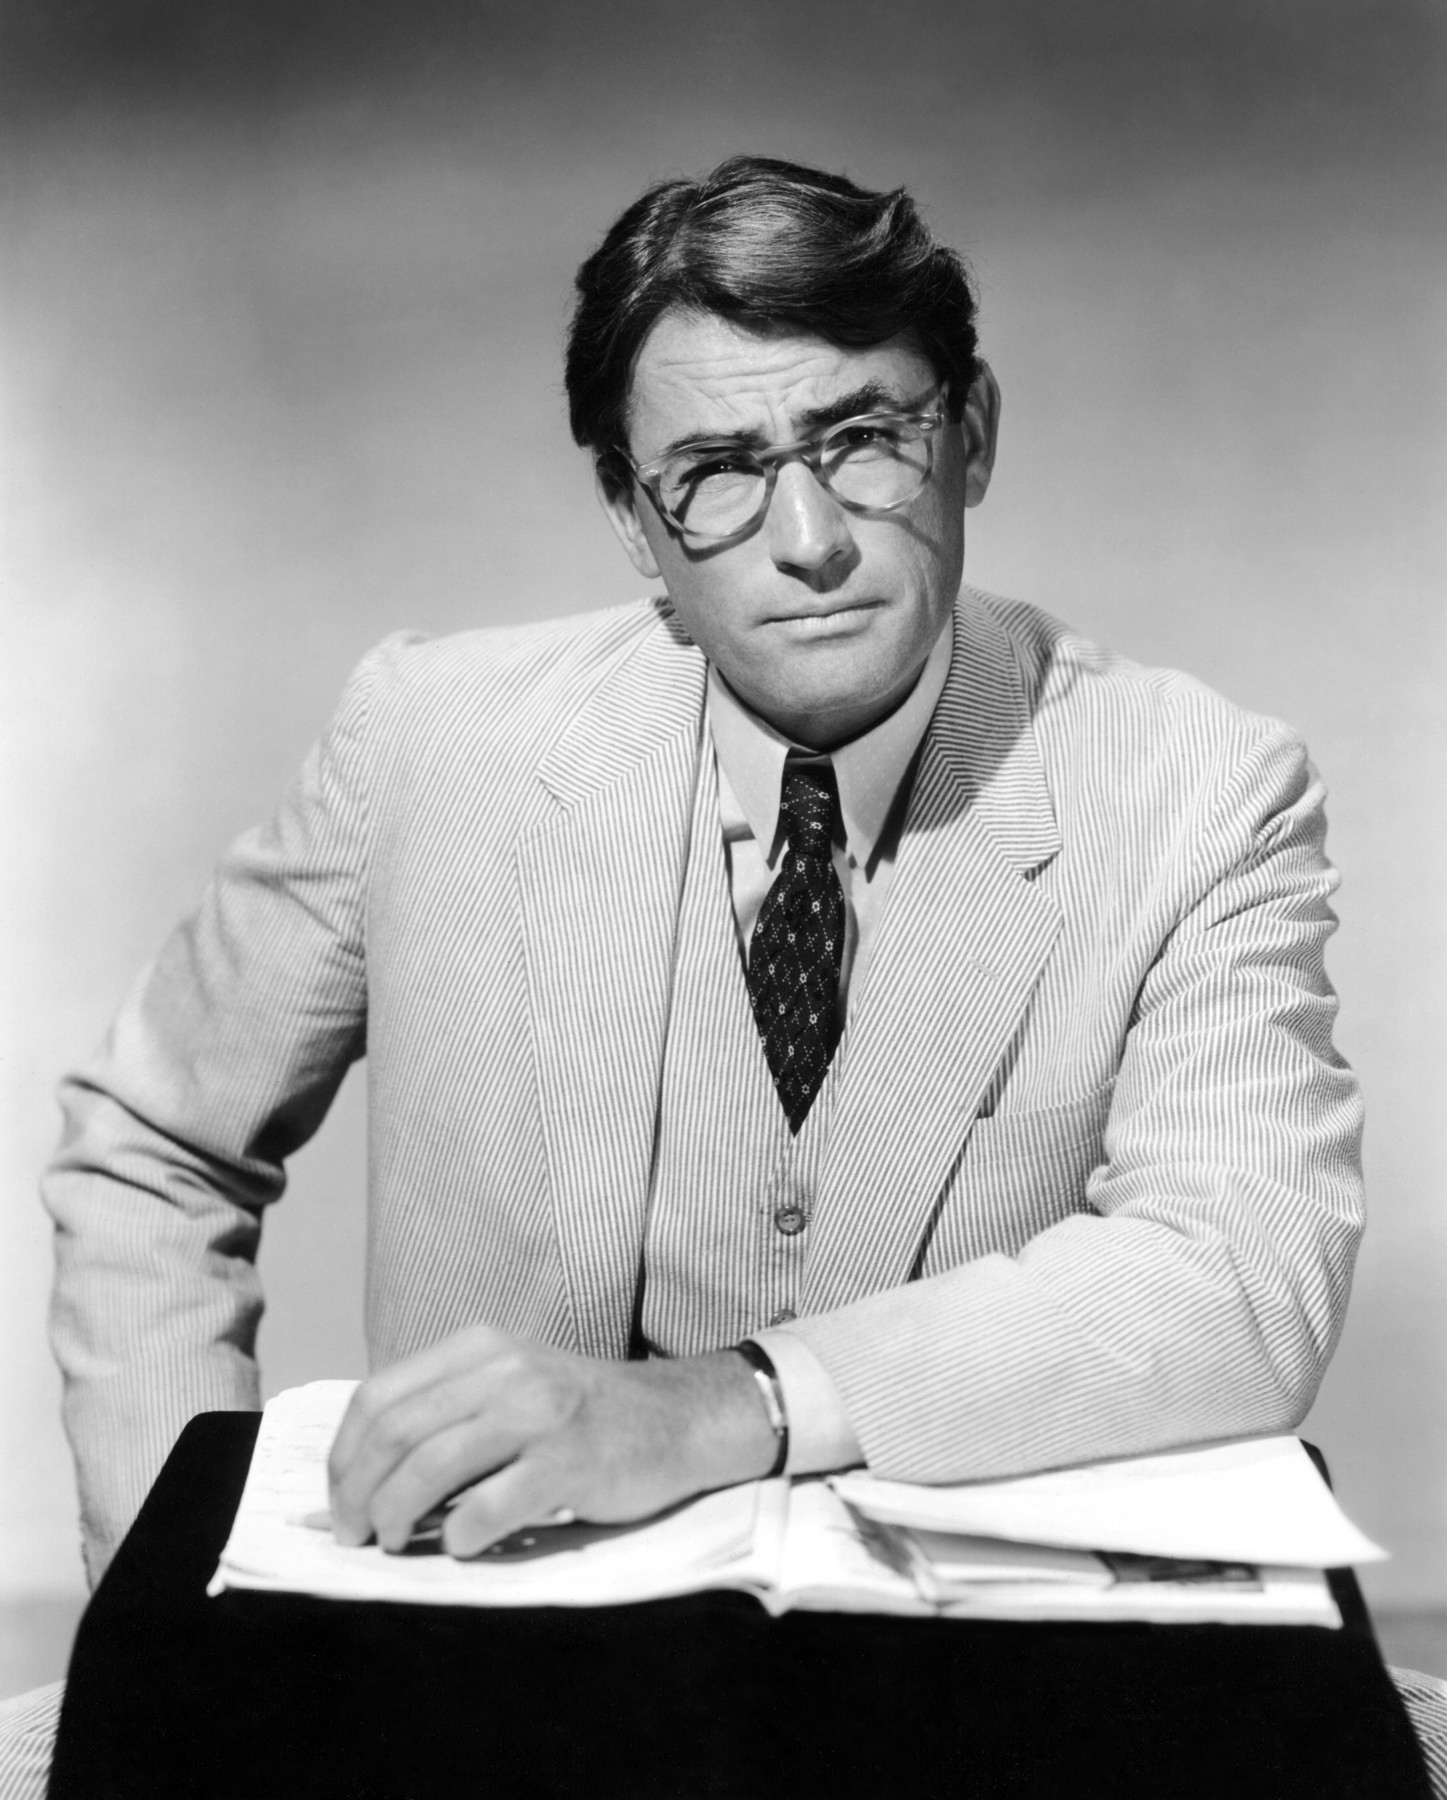 in to kill a mockingbird atticus finch is loyal Get an answer for 'in to kill a mockingbird, when does atticus show loyalty,   when cecil jacobs mocks atticus and his defense of tom robinson to scout at.